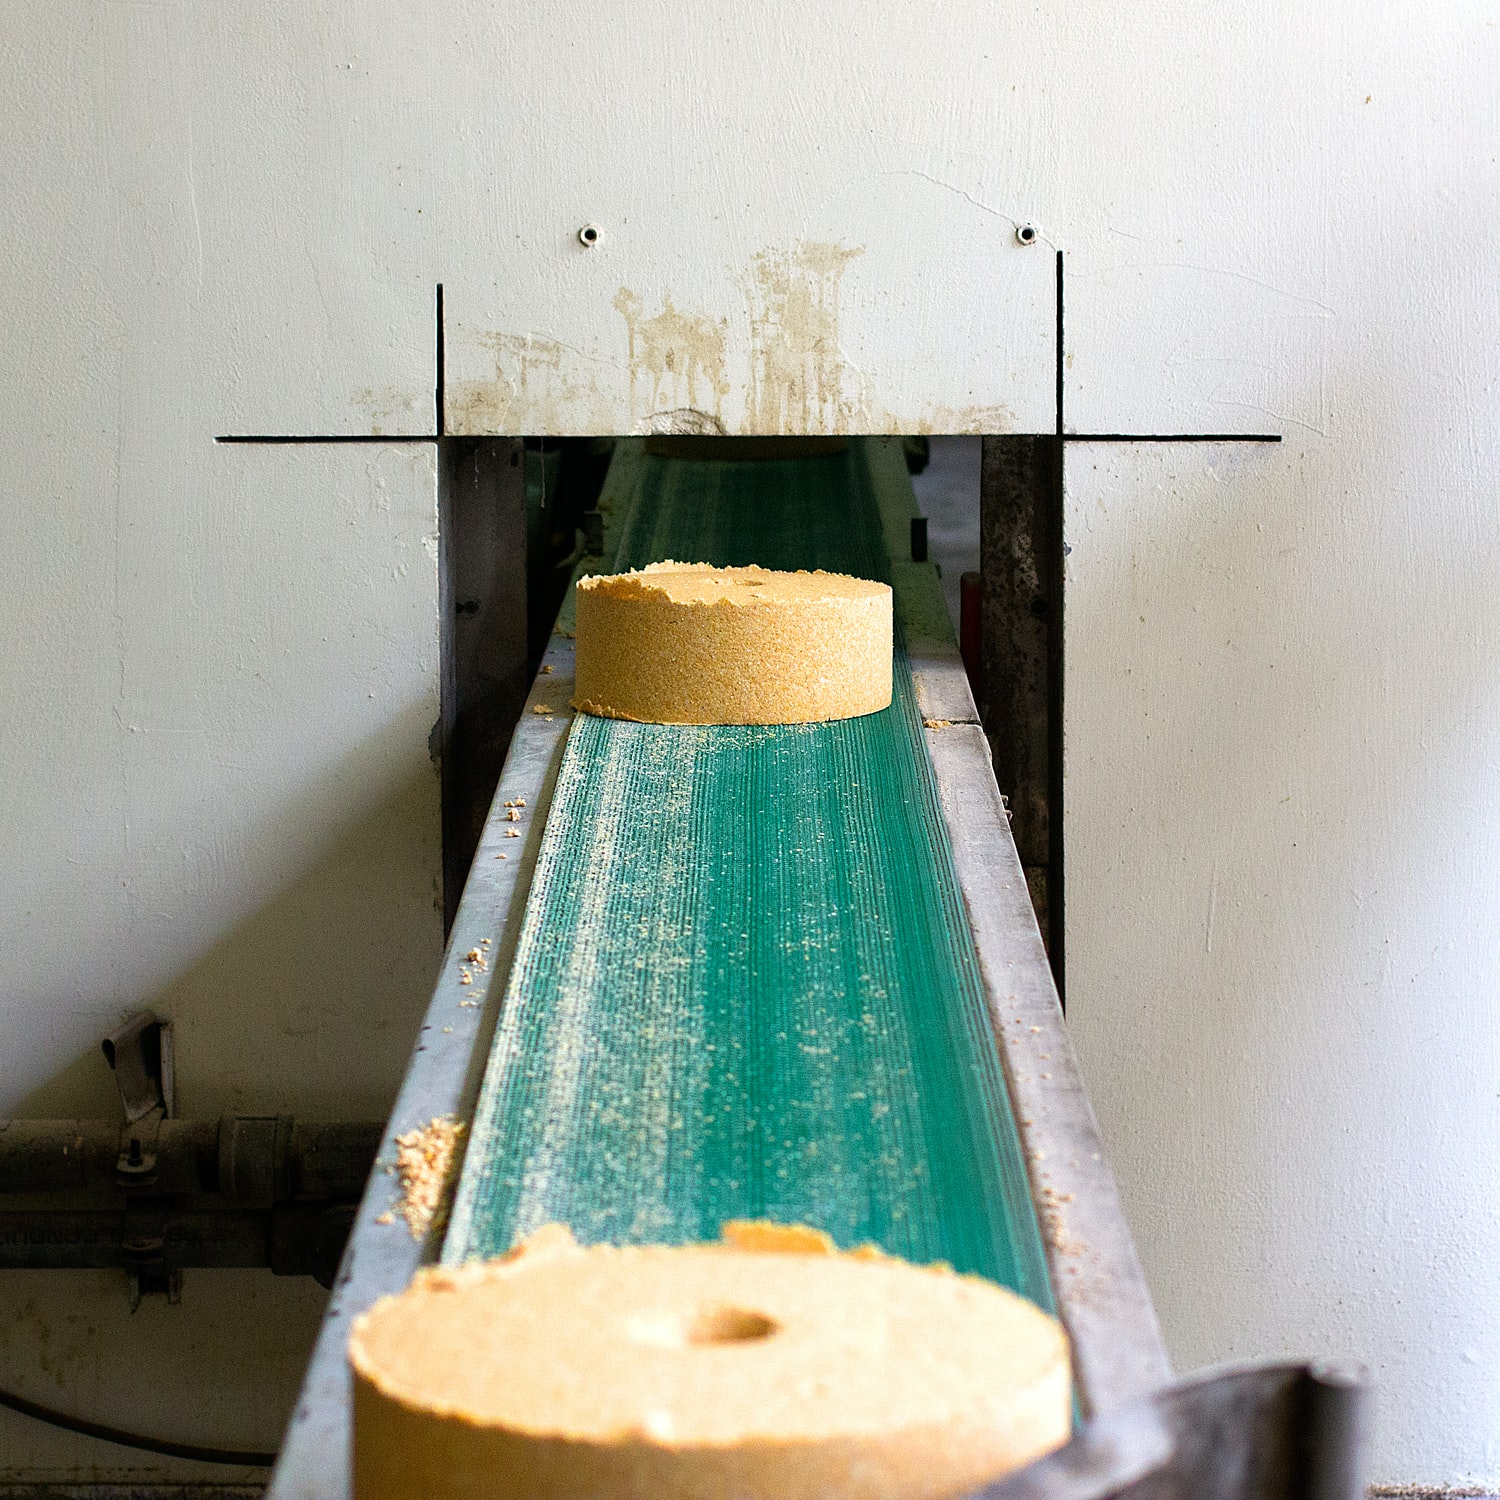 two cylindrical brown block on conveyor belt